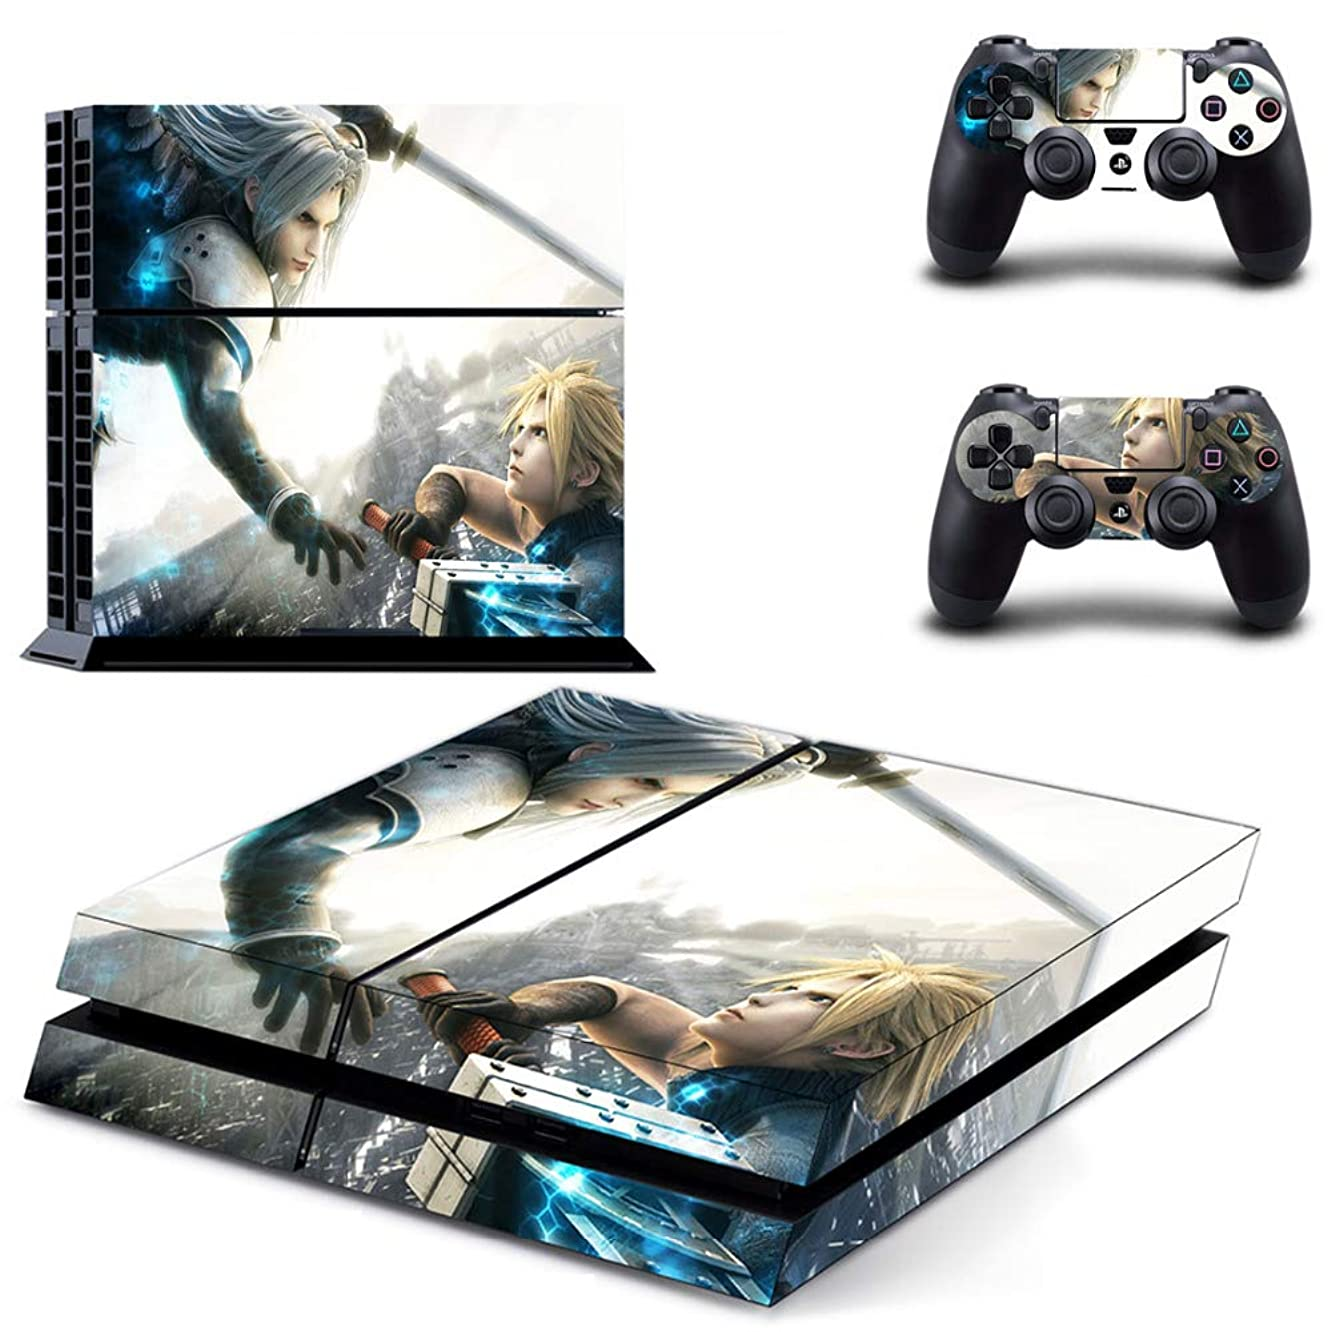 Homie Store PS4 Pro Skin - Ps4 Skins - Ps4 Slim Sticker - Game Final Fantasy PS4 Skin Sticker Decal for Sony Playstation 4 Console and 2 Controller Skins PS4 Stickers Vinyl Accessory